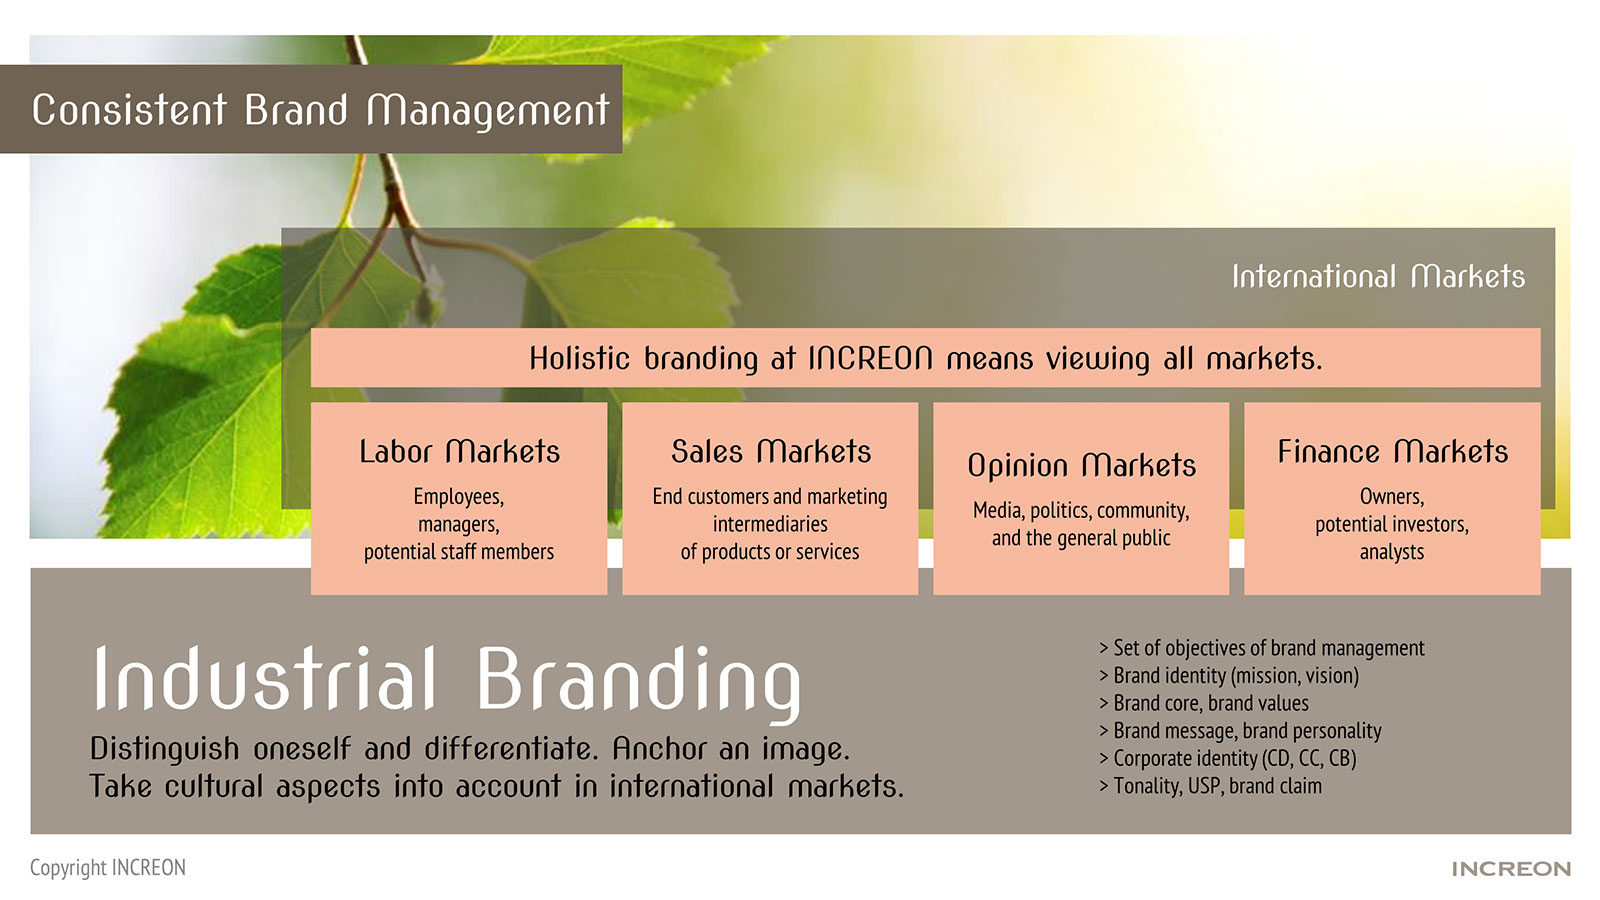 Holistic branding in sales, labor, opinion, and financial markets contributes to consistent international brand management.